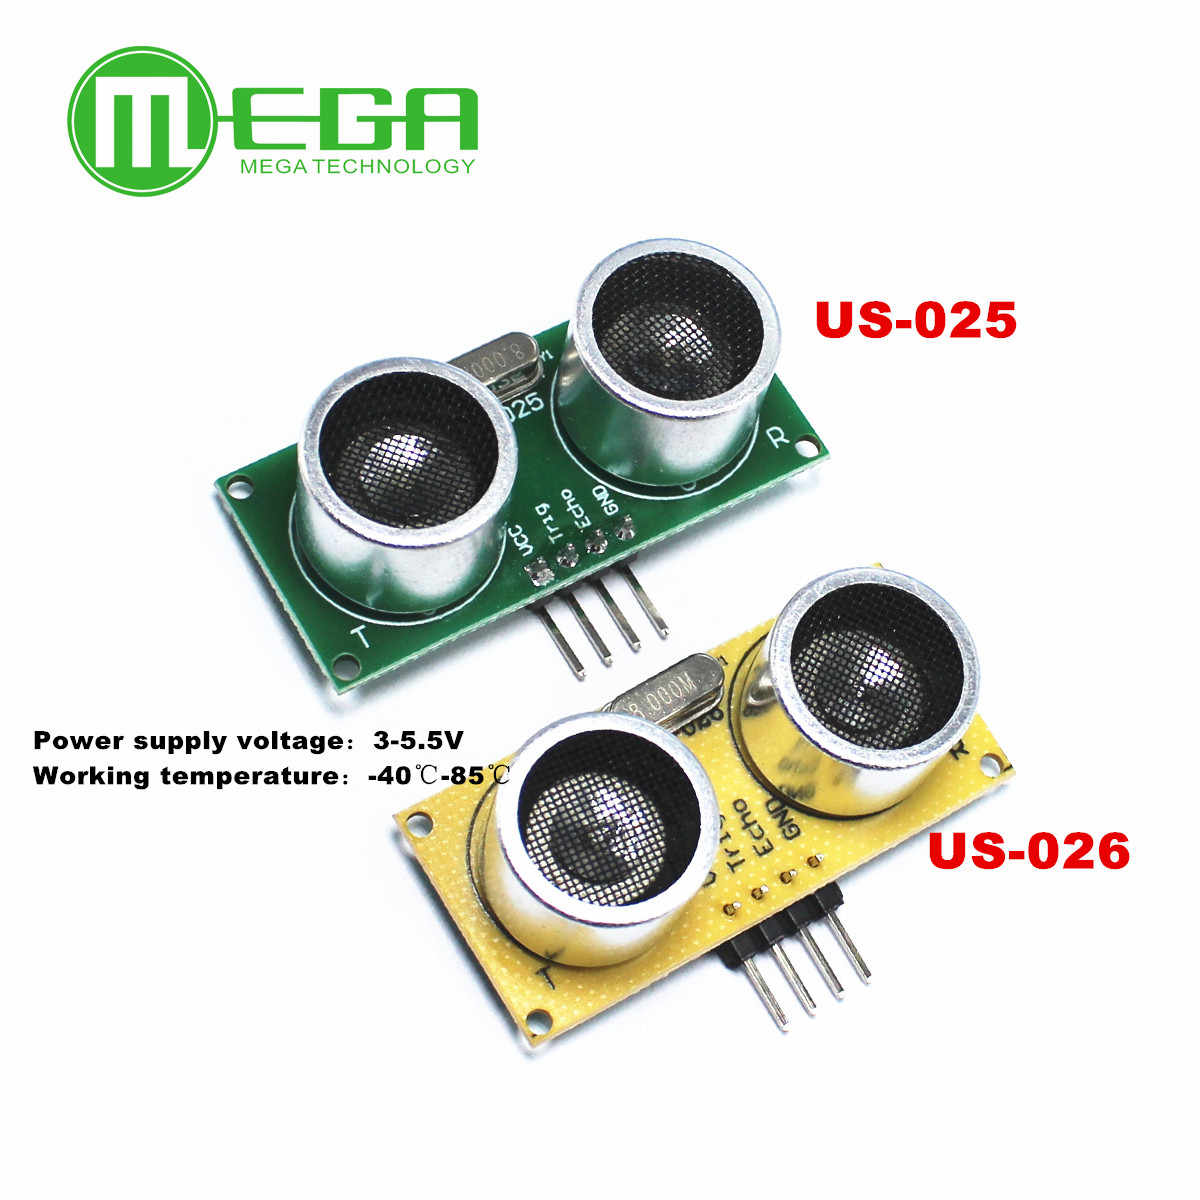 US-025 US-026 ultrasonic ranging sensor module replaces hc-sr04 industrial grade 3V~ 5.5v